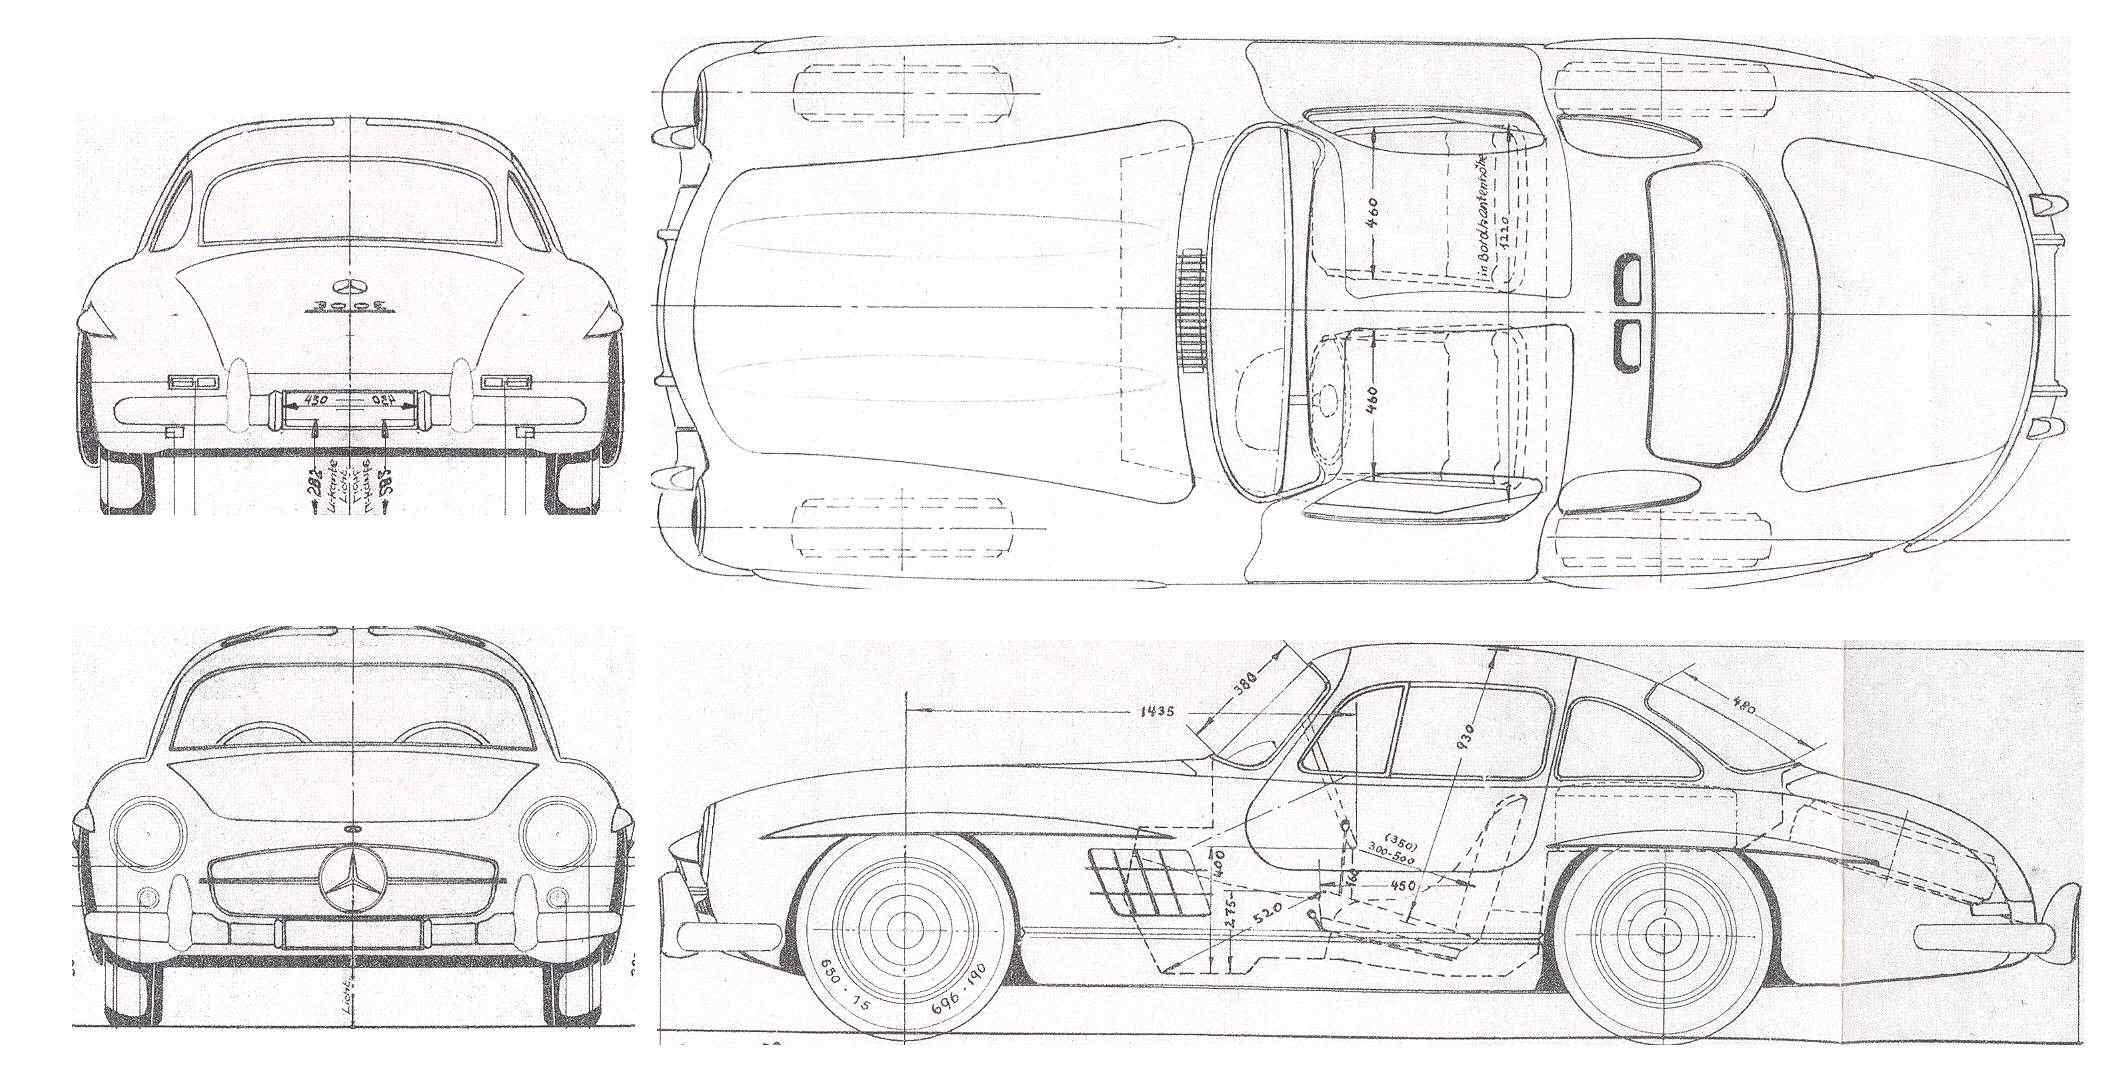 Mercedes-Benz 300SL blueprint